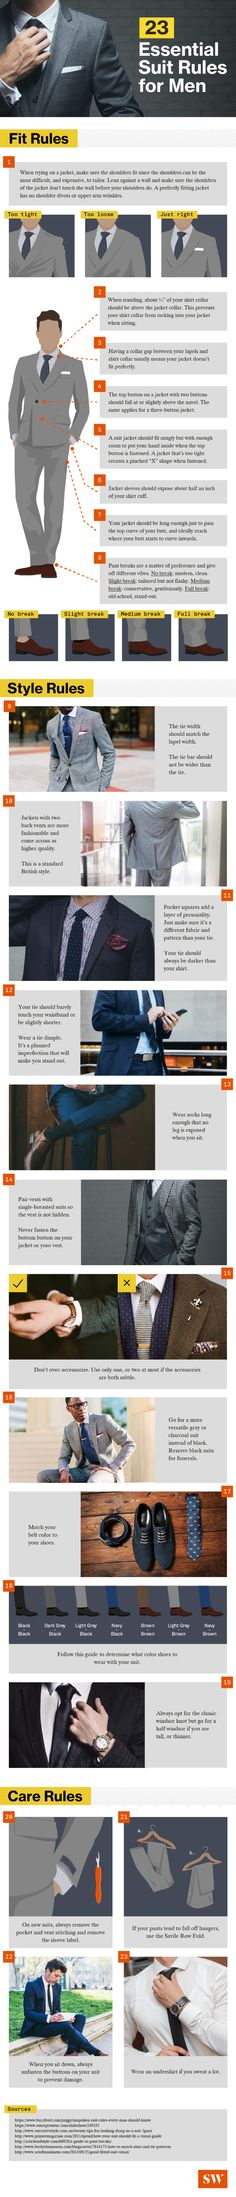 23 Essential Suit Rules For Men Infographic by Cheatography http://www.cheatography.com/cheatography/cheat-sheets/23-essential-suit-rules-for-men/ #cheatsheet #suits #fashion #clothing #men #shirts